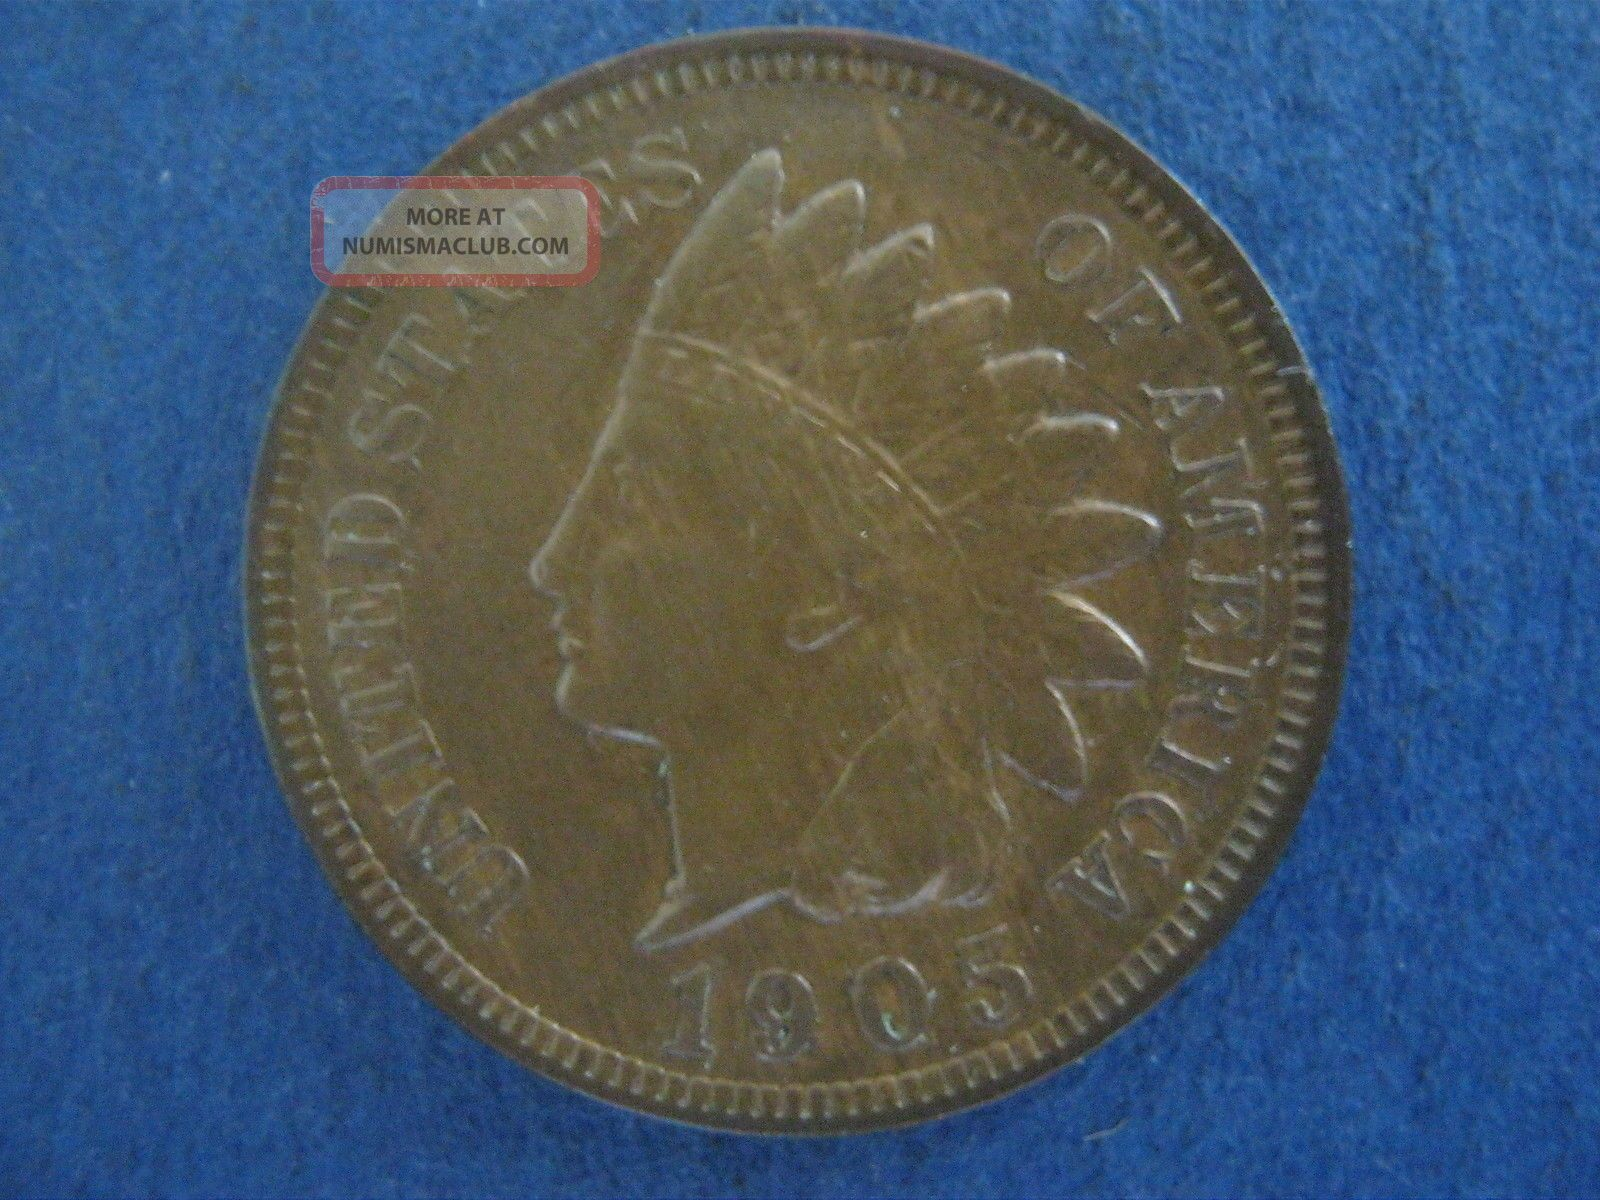 1905 Indian Head Cent,  Extra Fine Small Cents photo